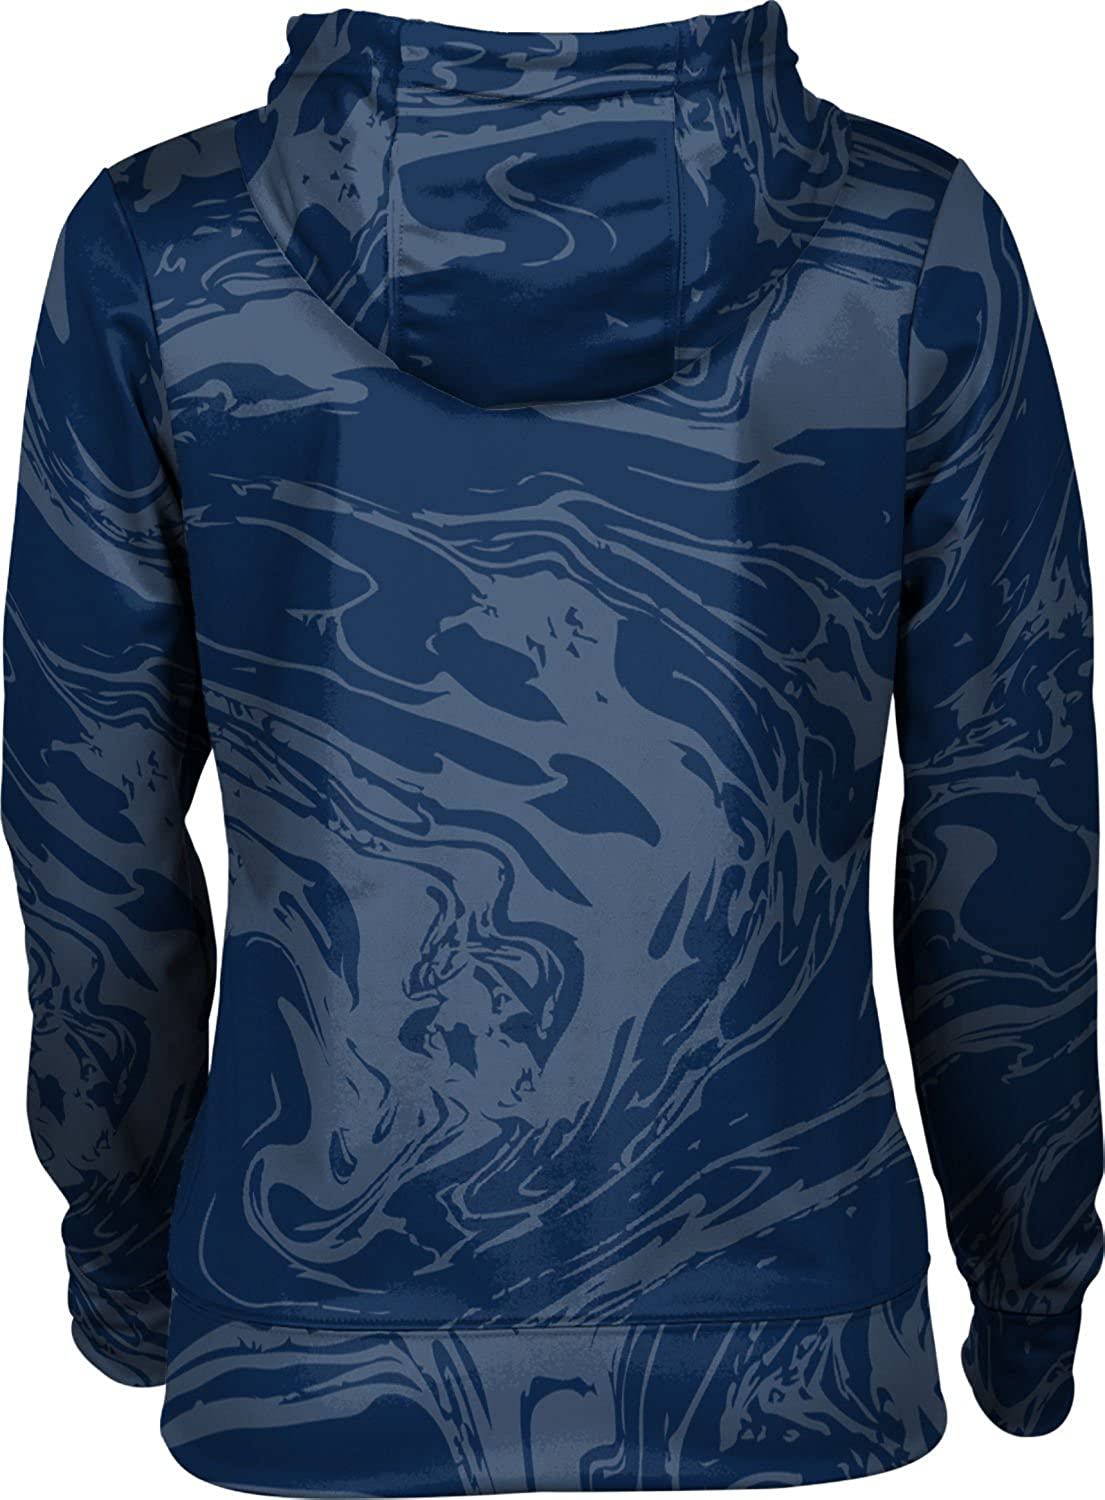 UTC Ripple School Spirit Sweatshirt Girls Zipper Hoodie University of Tennessee at Chattanooga